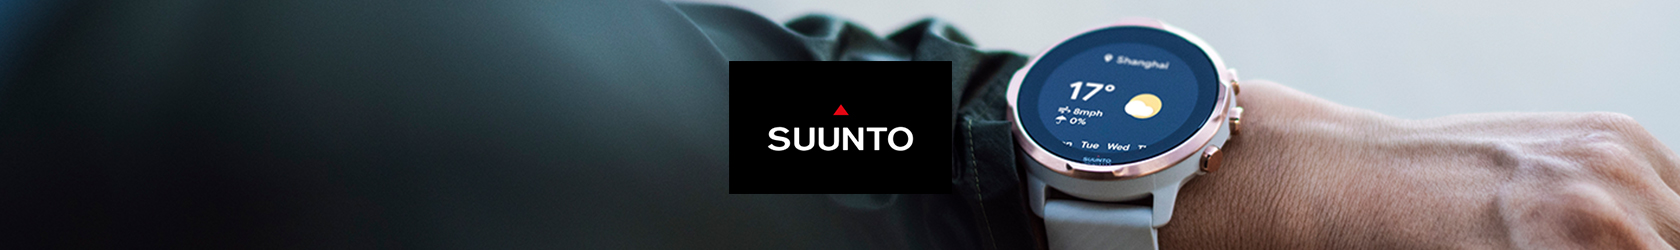 A person's wrist with a Suunto 7 watch and the Suunto logo in the centre of the image.